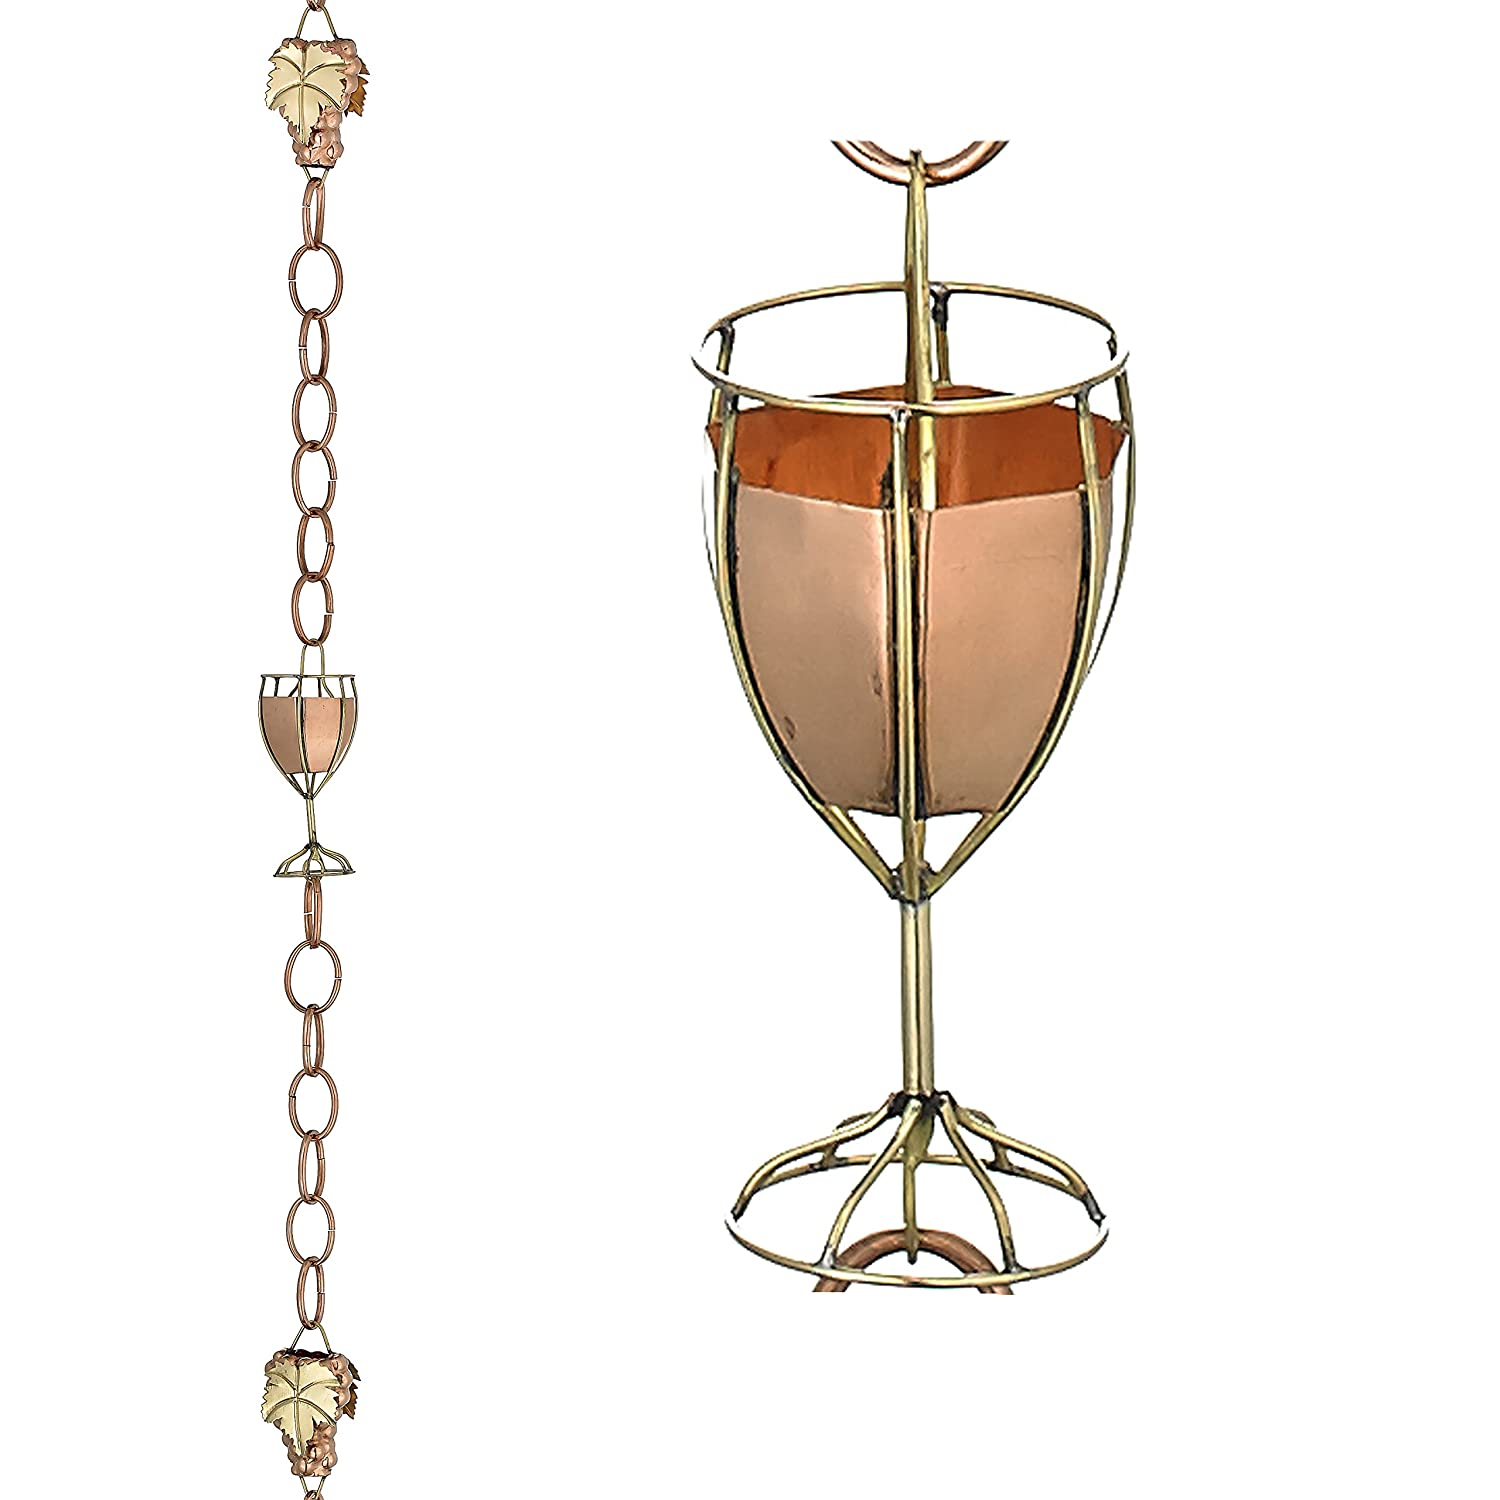 Good Directions 482P-8 Wine and Glasses Rain Chain, 8-1/2', Polished Copper 8-1/2' Inc.